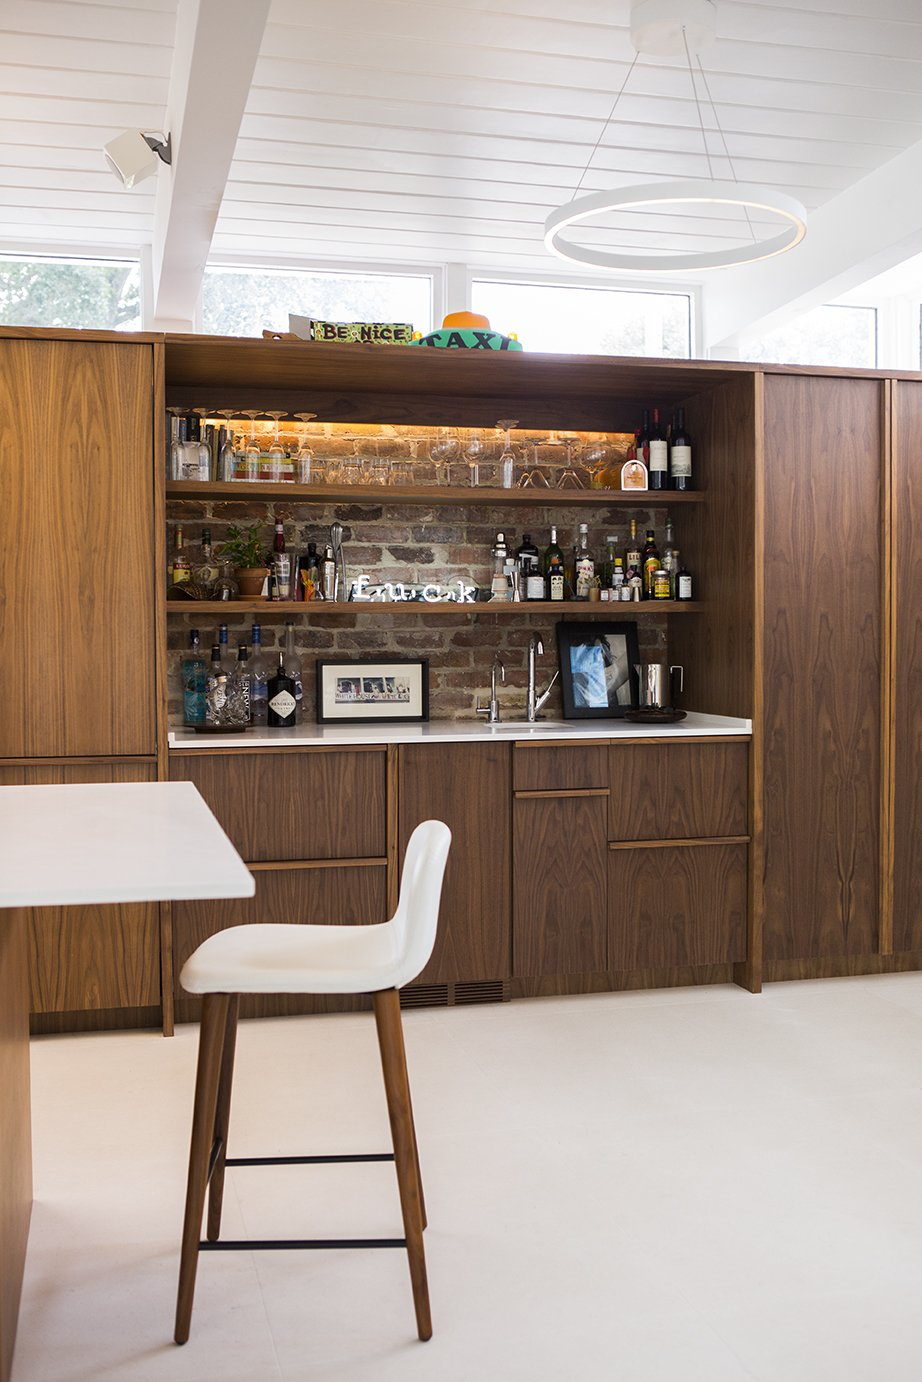 The kitchen and bar millwork is ApplePly with a walnut veneer. Tagged: Dining Room, Bar, Chair, Table, and Ceiling Lighting.  Emerald Street Residence by Dwell from Back to the Garden